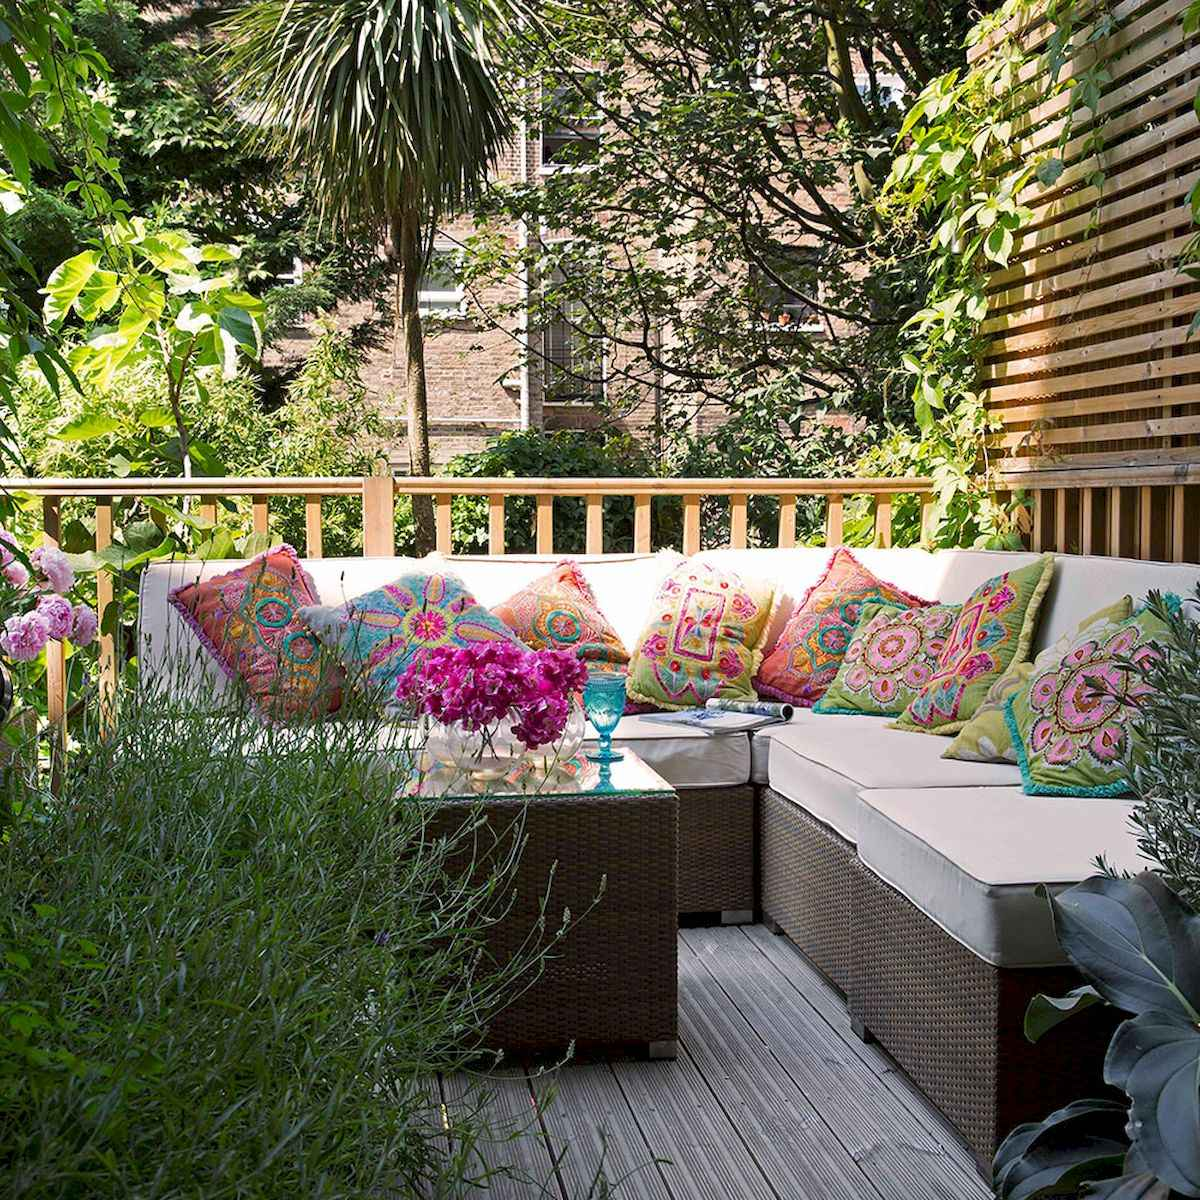 80 DIY Summery Backyard Projects Ideas Make Your Summer Awesome (16)